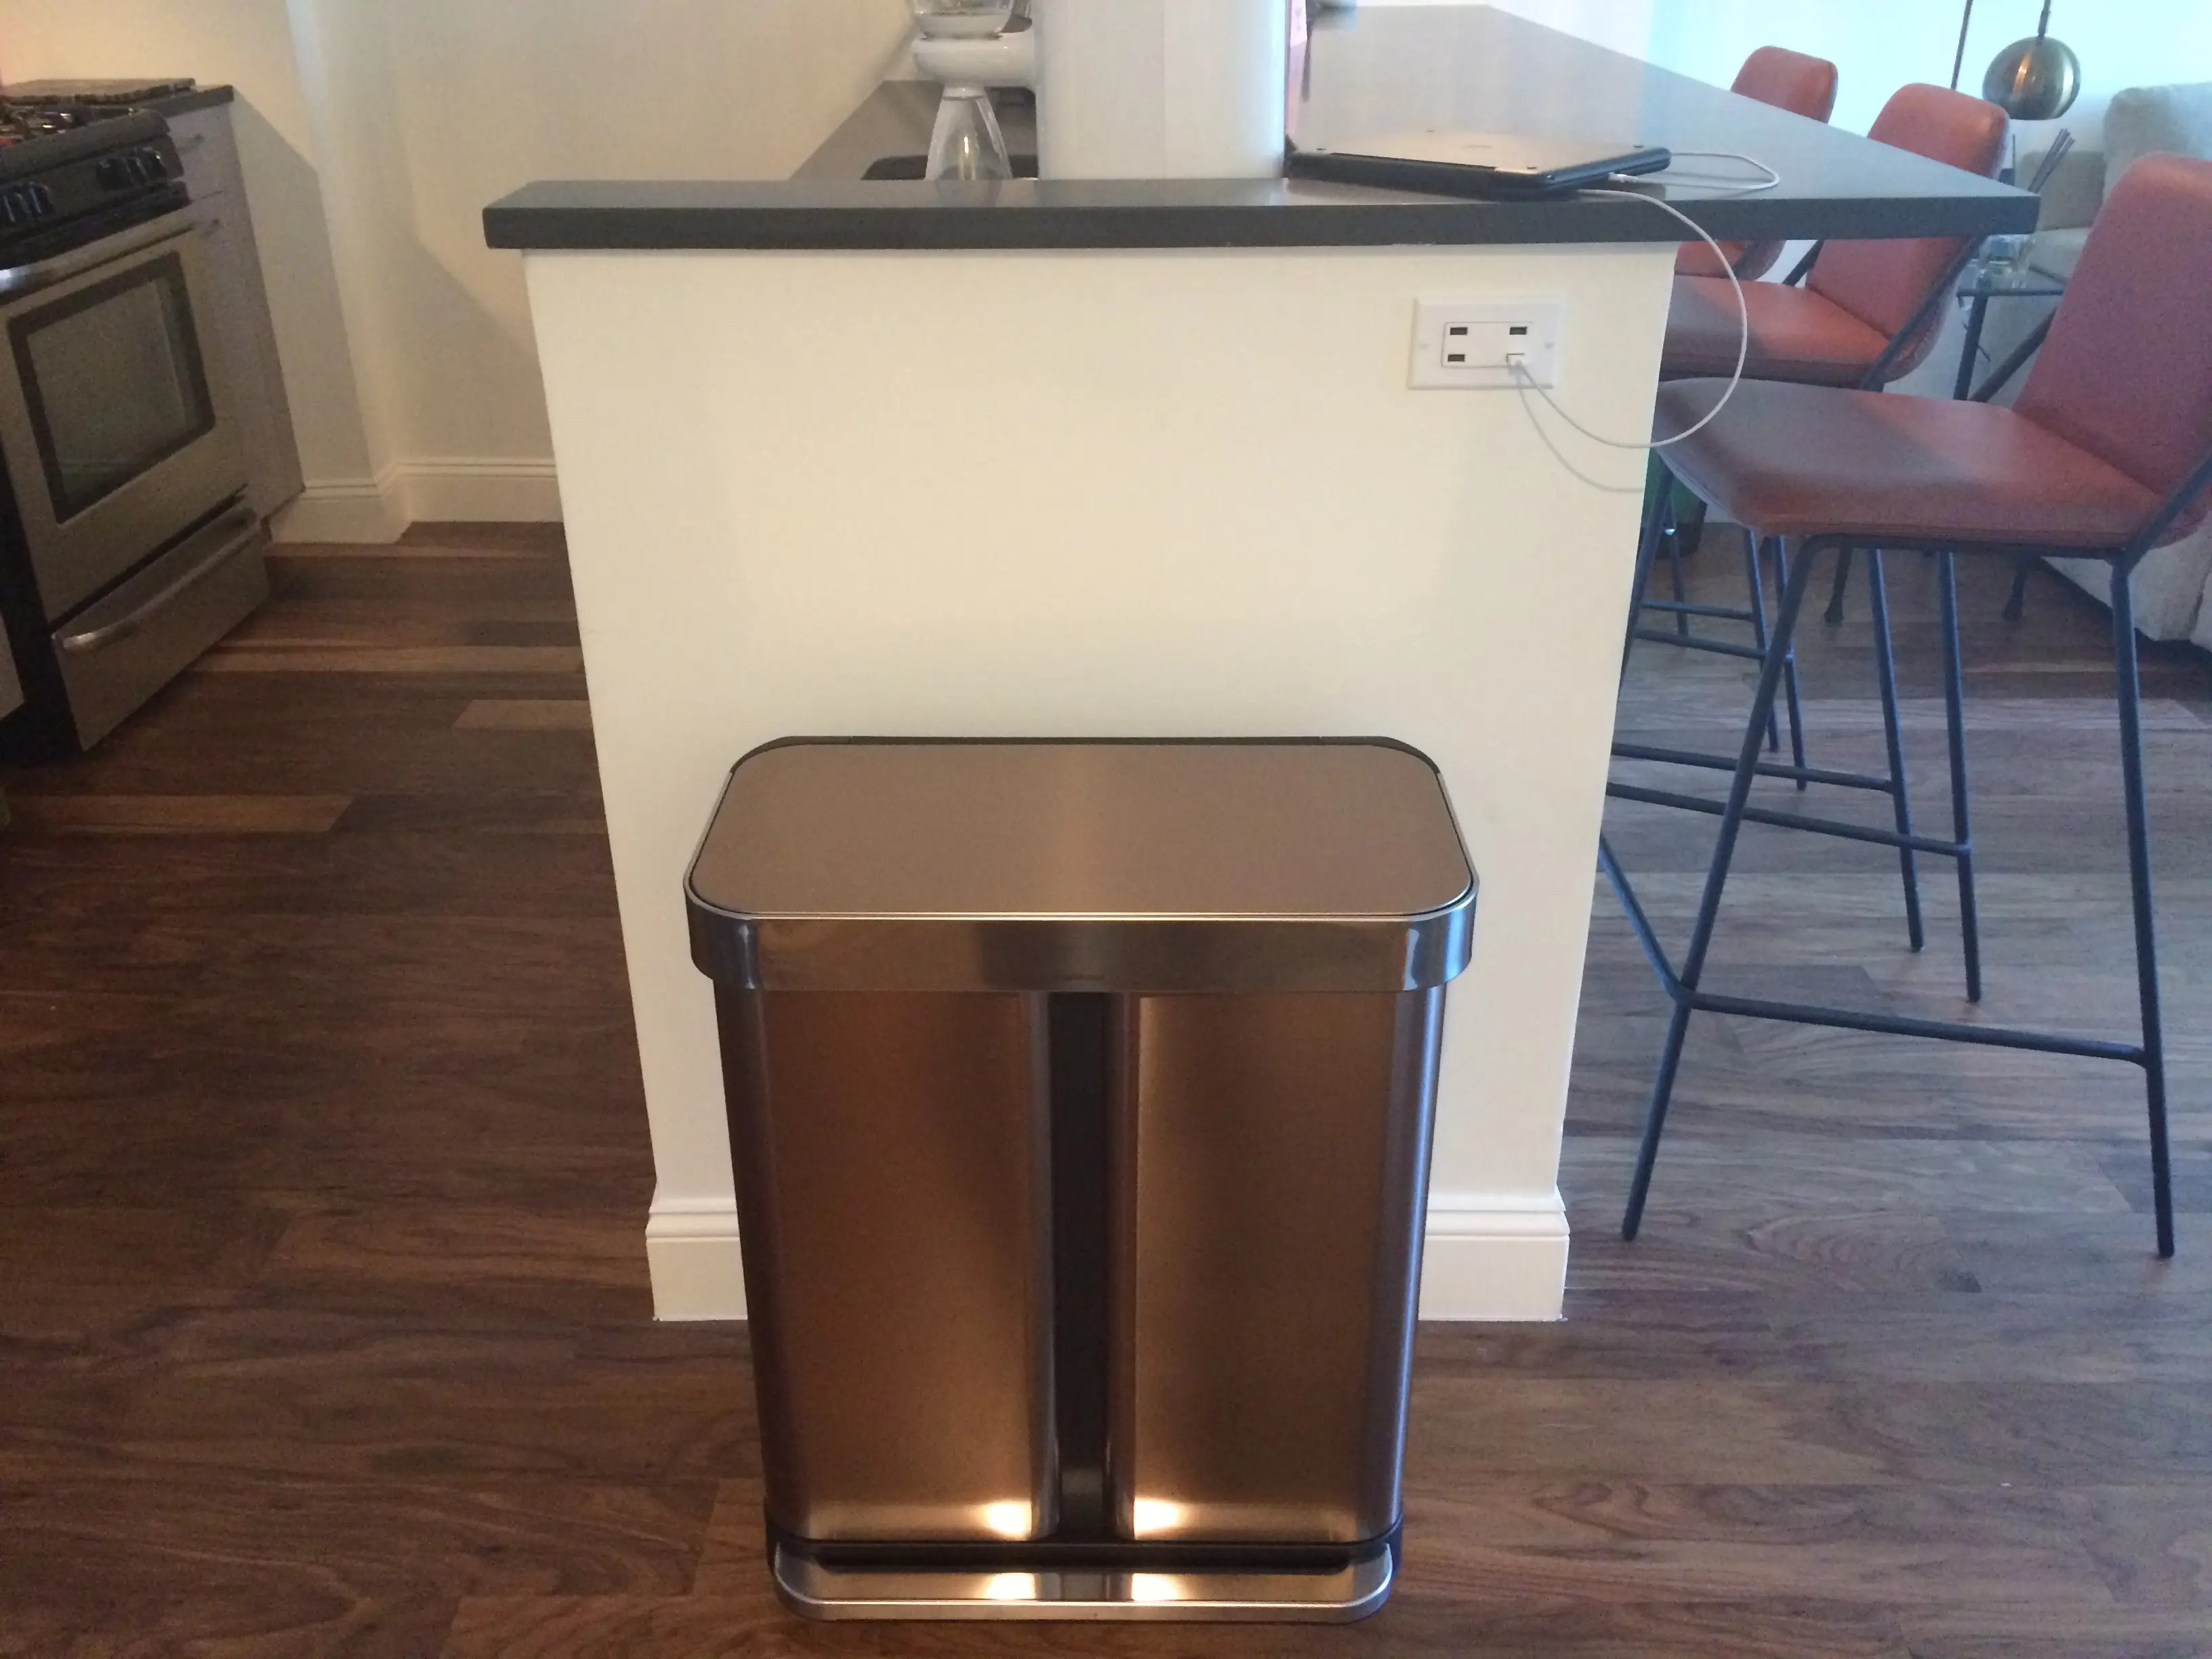 Rose Gold Trash Can Simplehuman Trash Can Is Worth More Than 50 Review